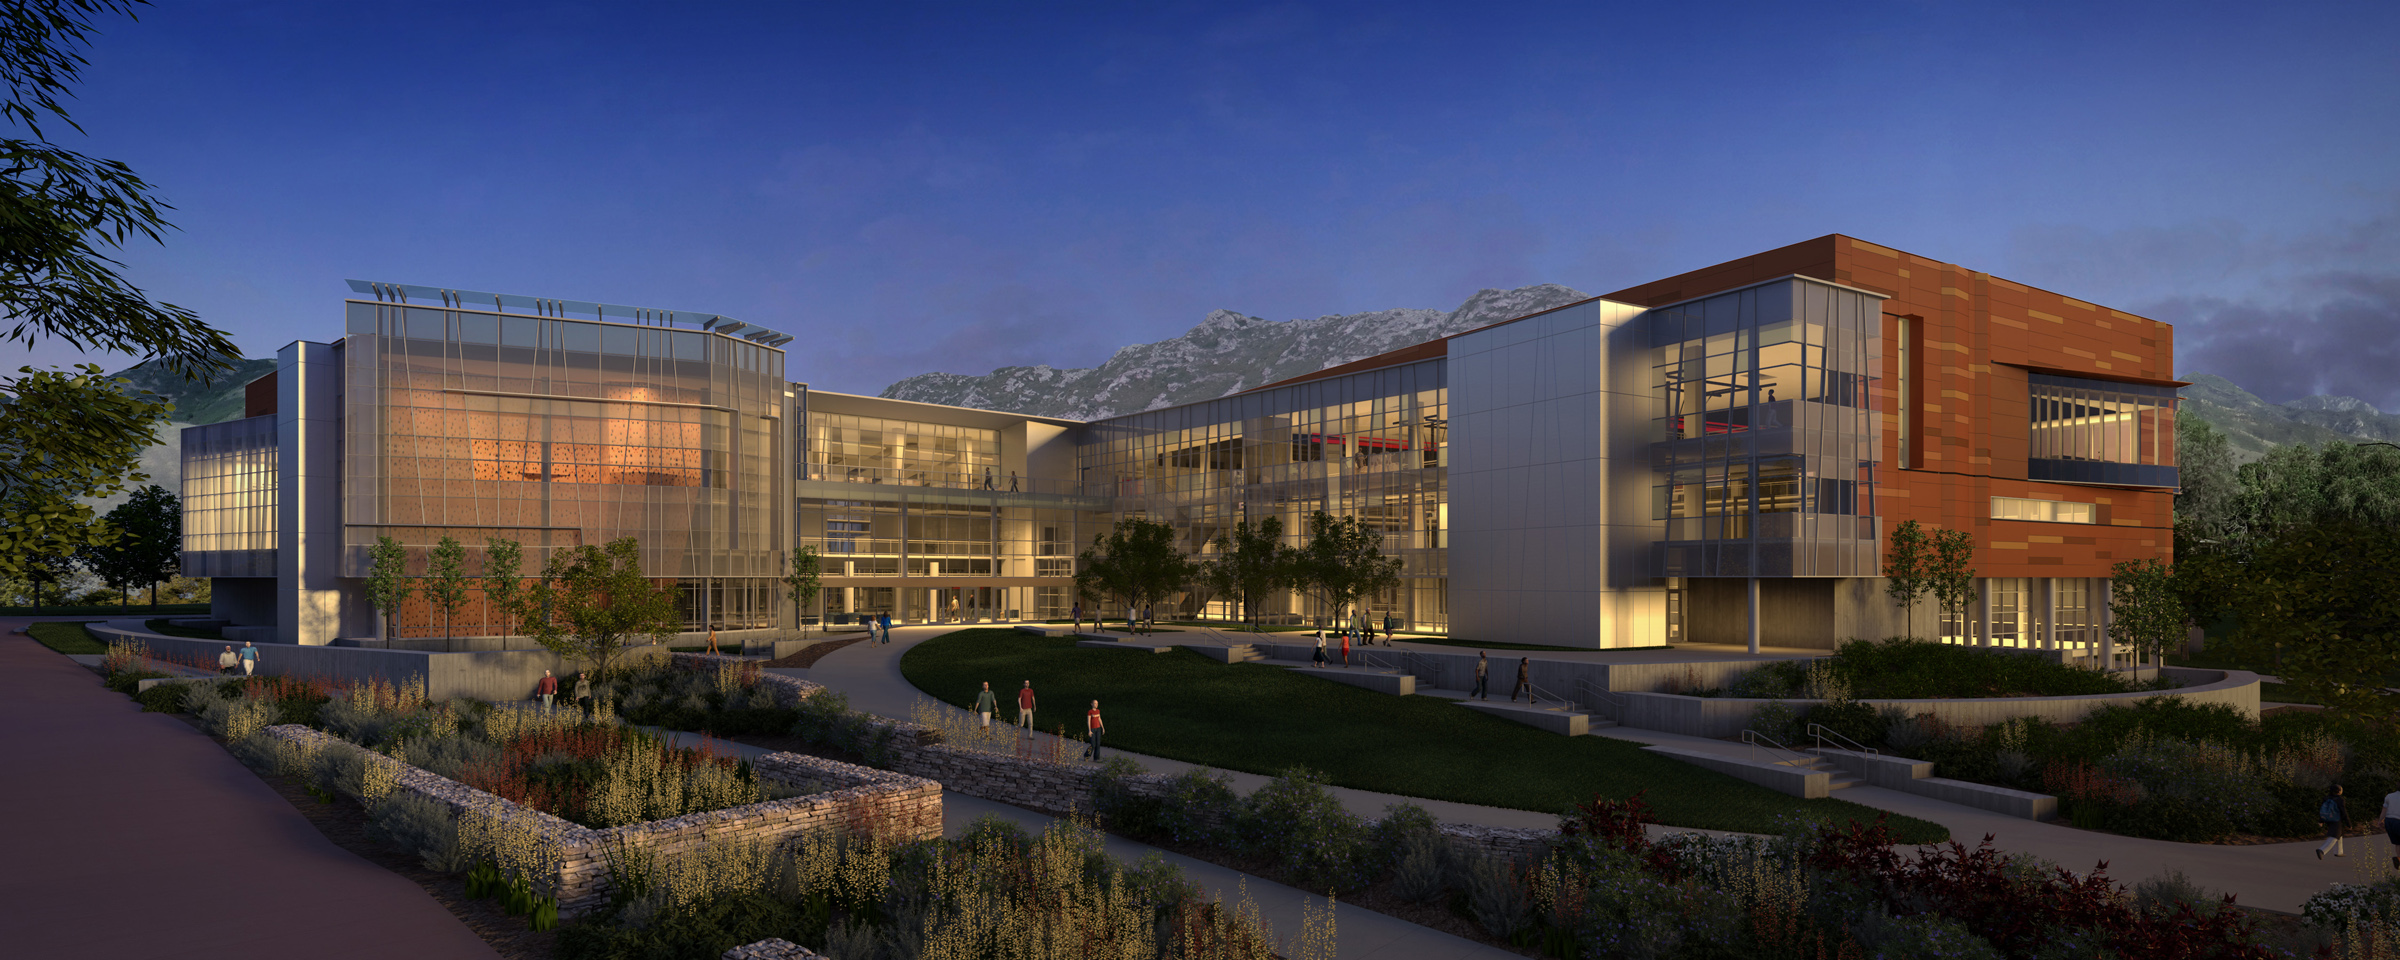 Artist rendering of the new Student Life Center, view from the HPER complex looking east.